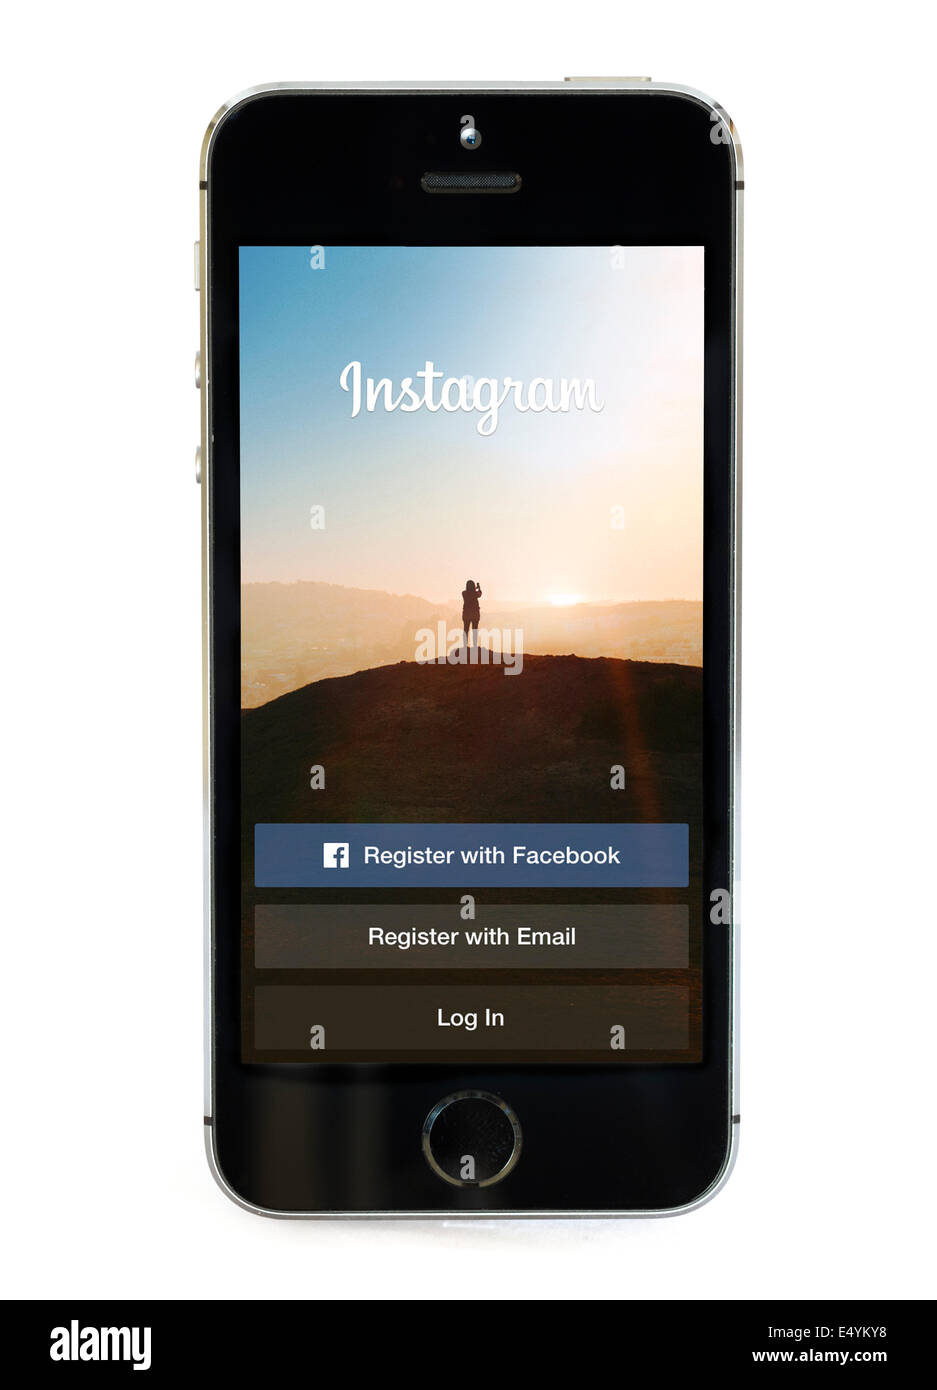 Instagram app on an Apple iPhone 5S - Stock Image